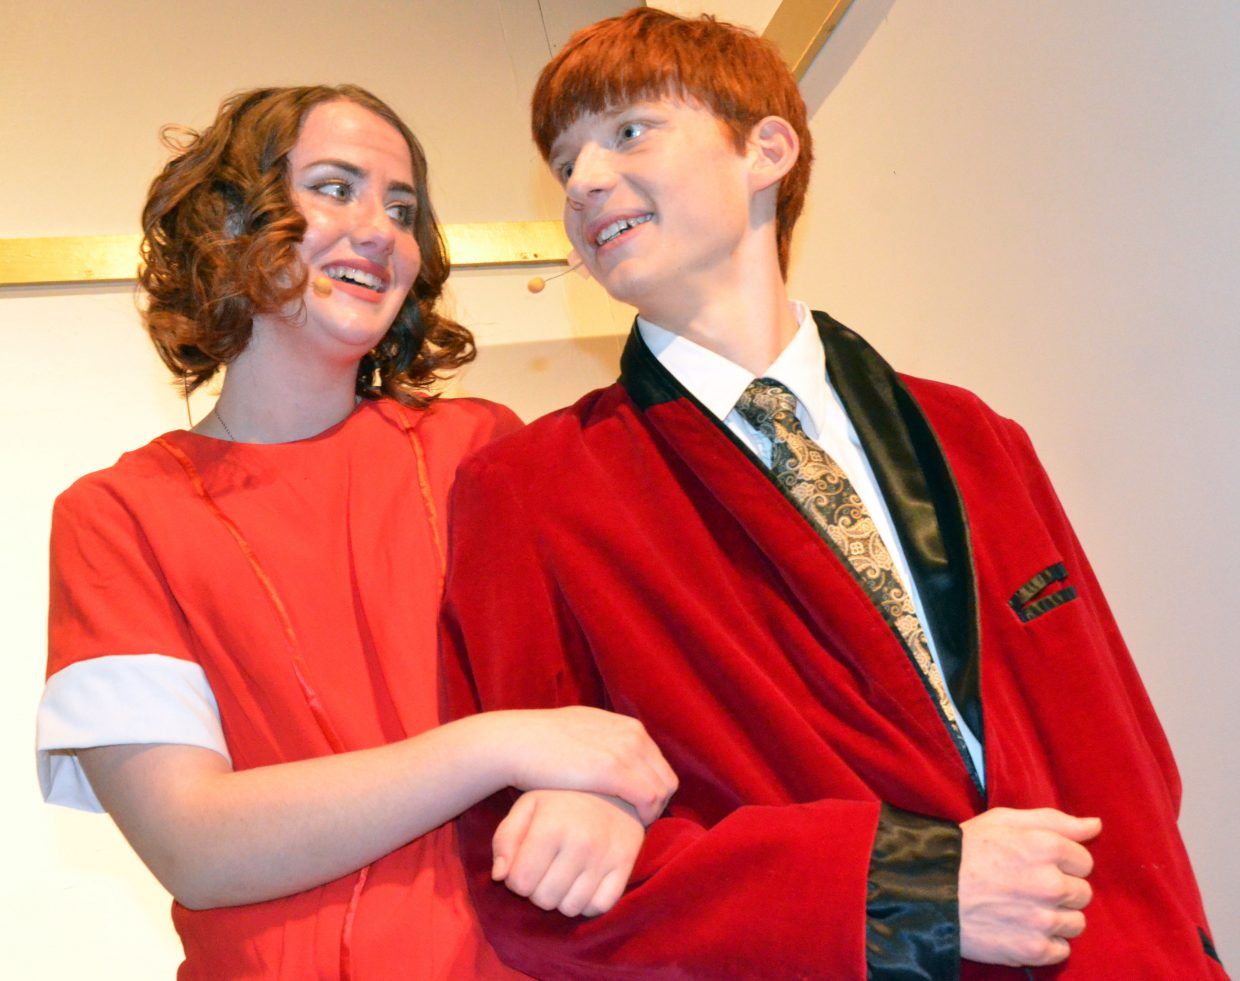 Annie (Courtney Smith) and Oliver Warbucks (Aaron Hill) get to know each other in